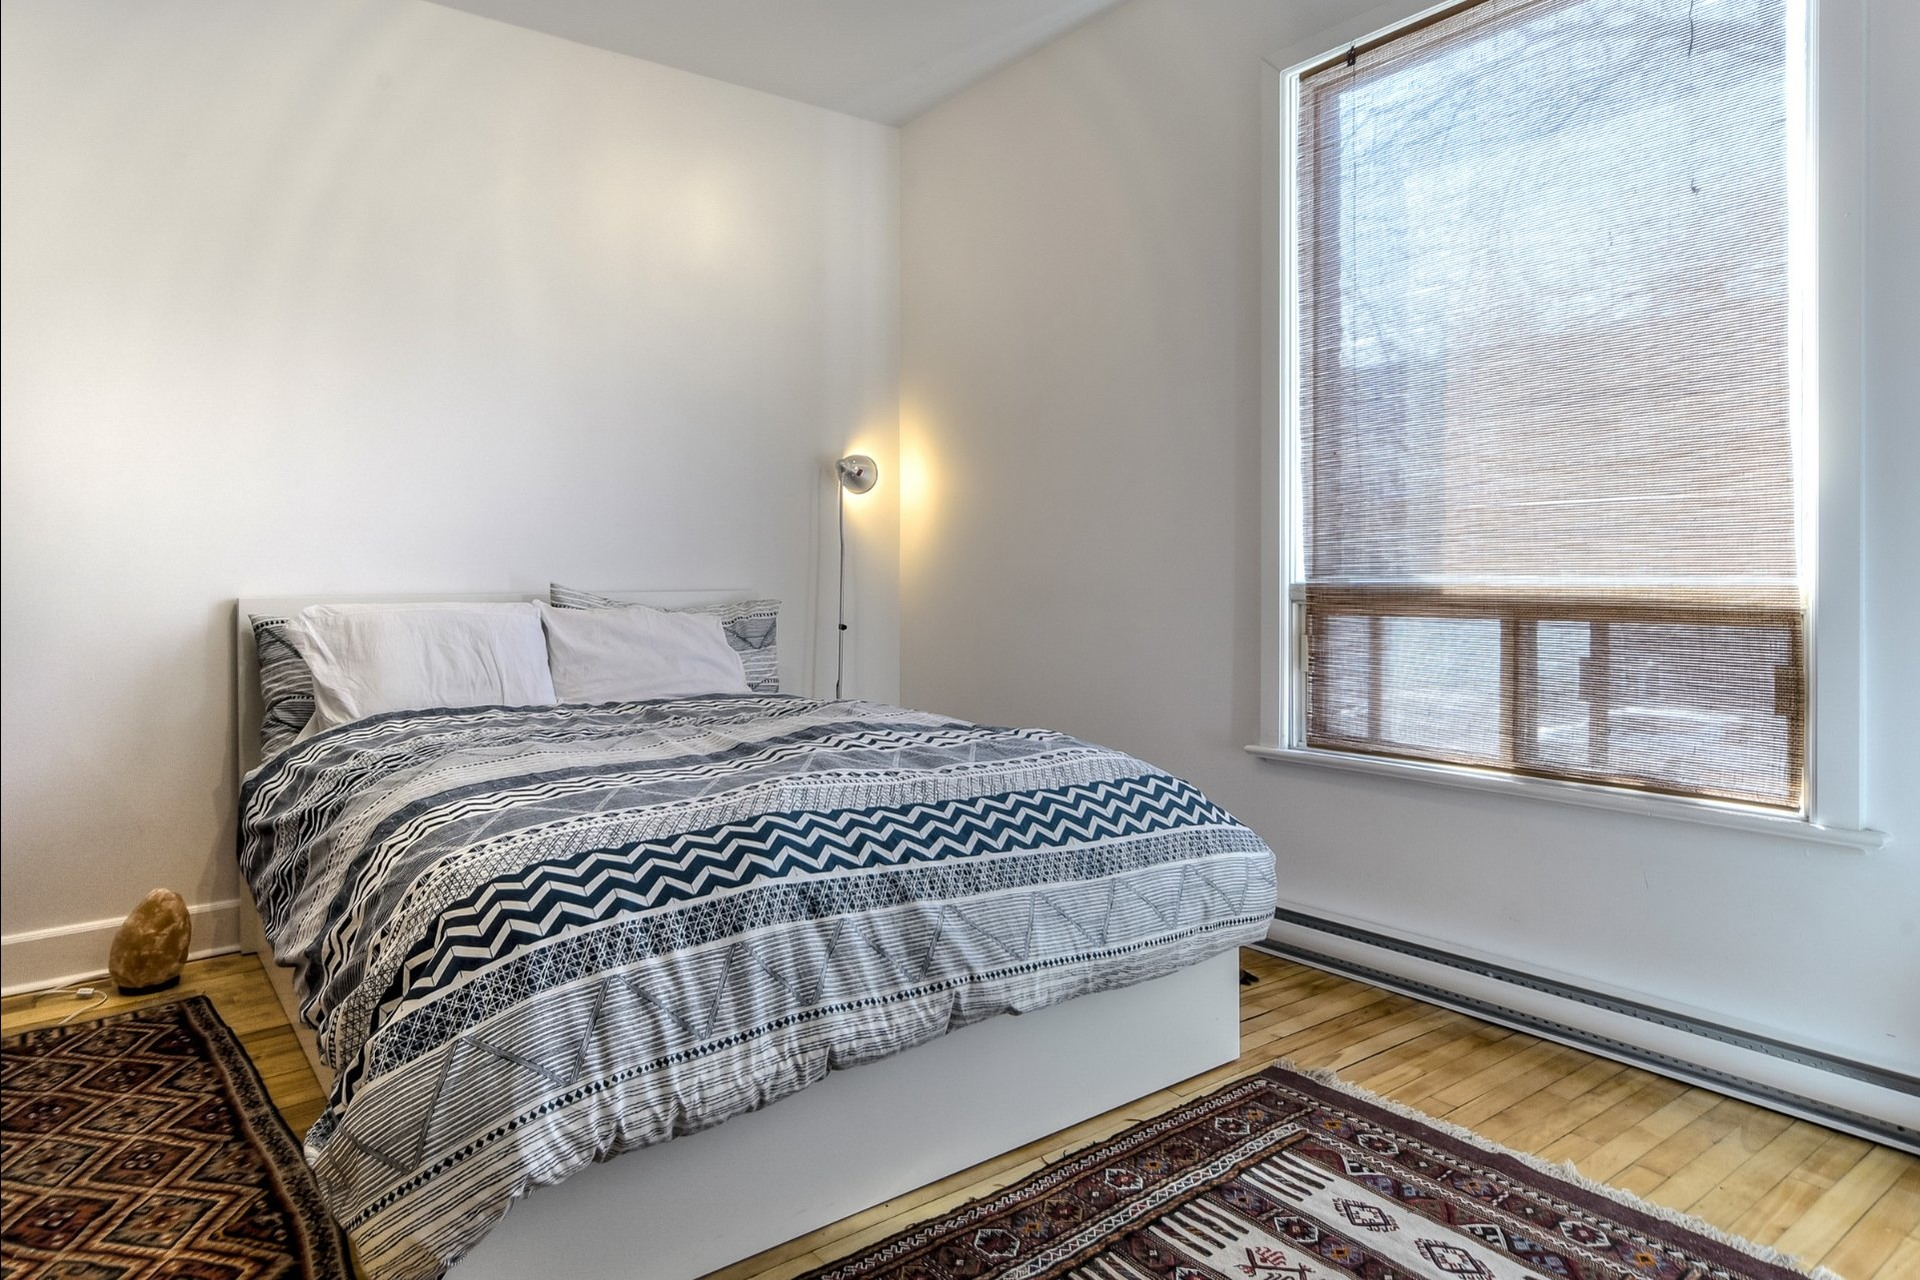 Triplex For sale Montréal Le Plateau-Mont-Royal  - 6 rooms